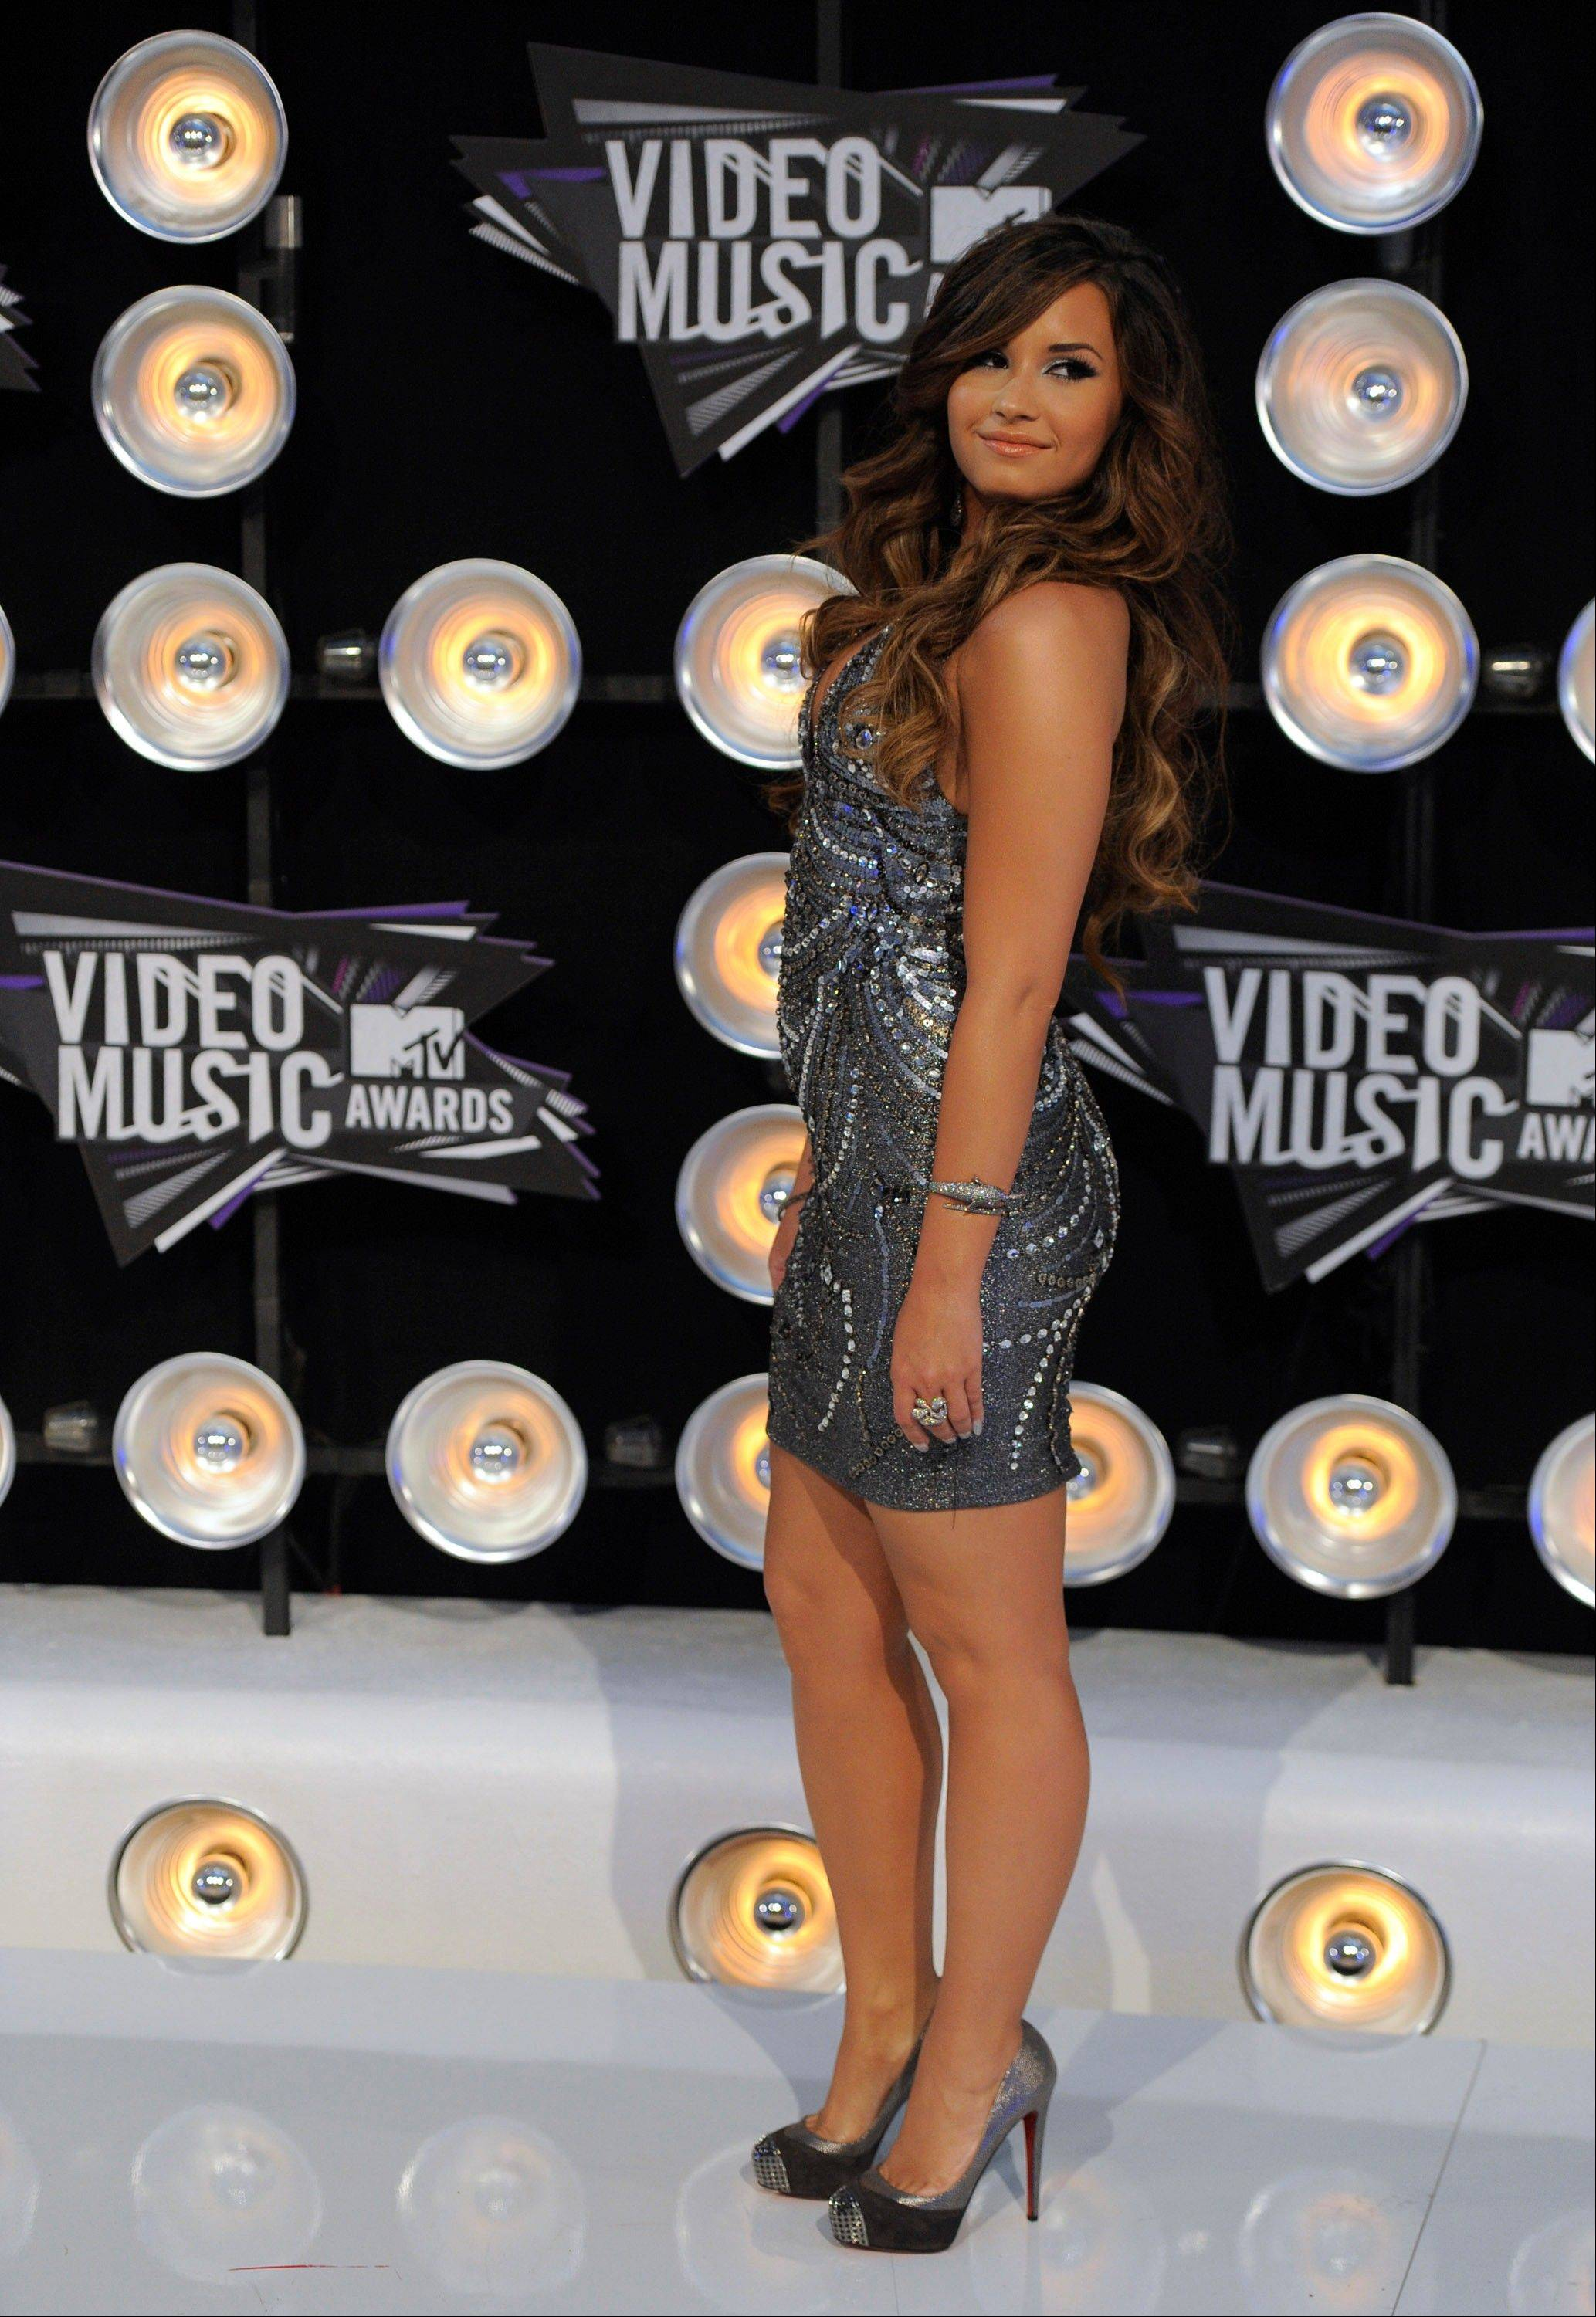 Actress and singer Demi Lovato arrives at the MTV Video Music Awards on Sunday in Los Angeles.